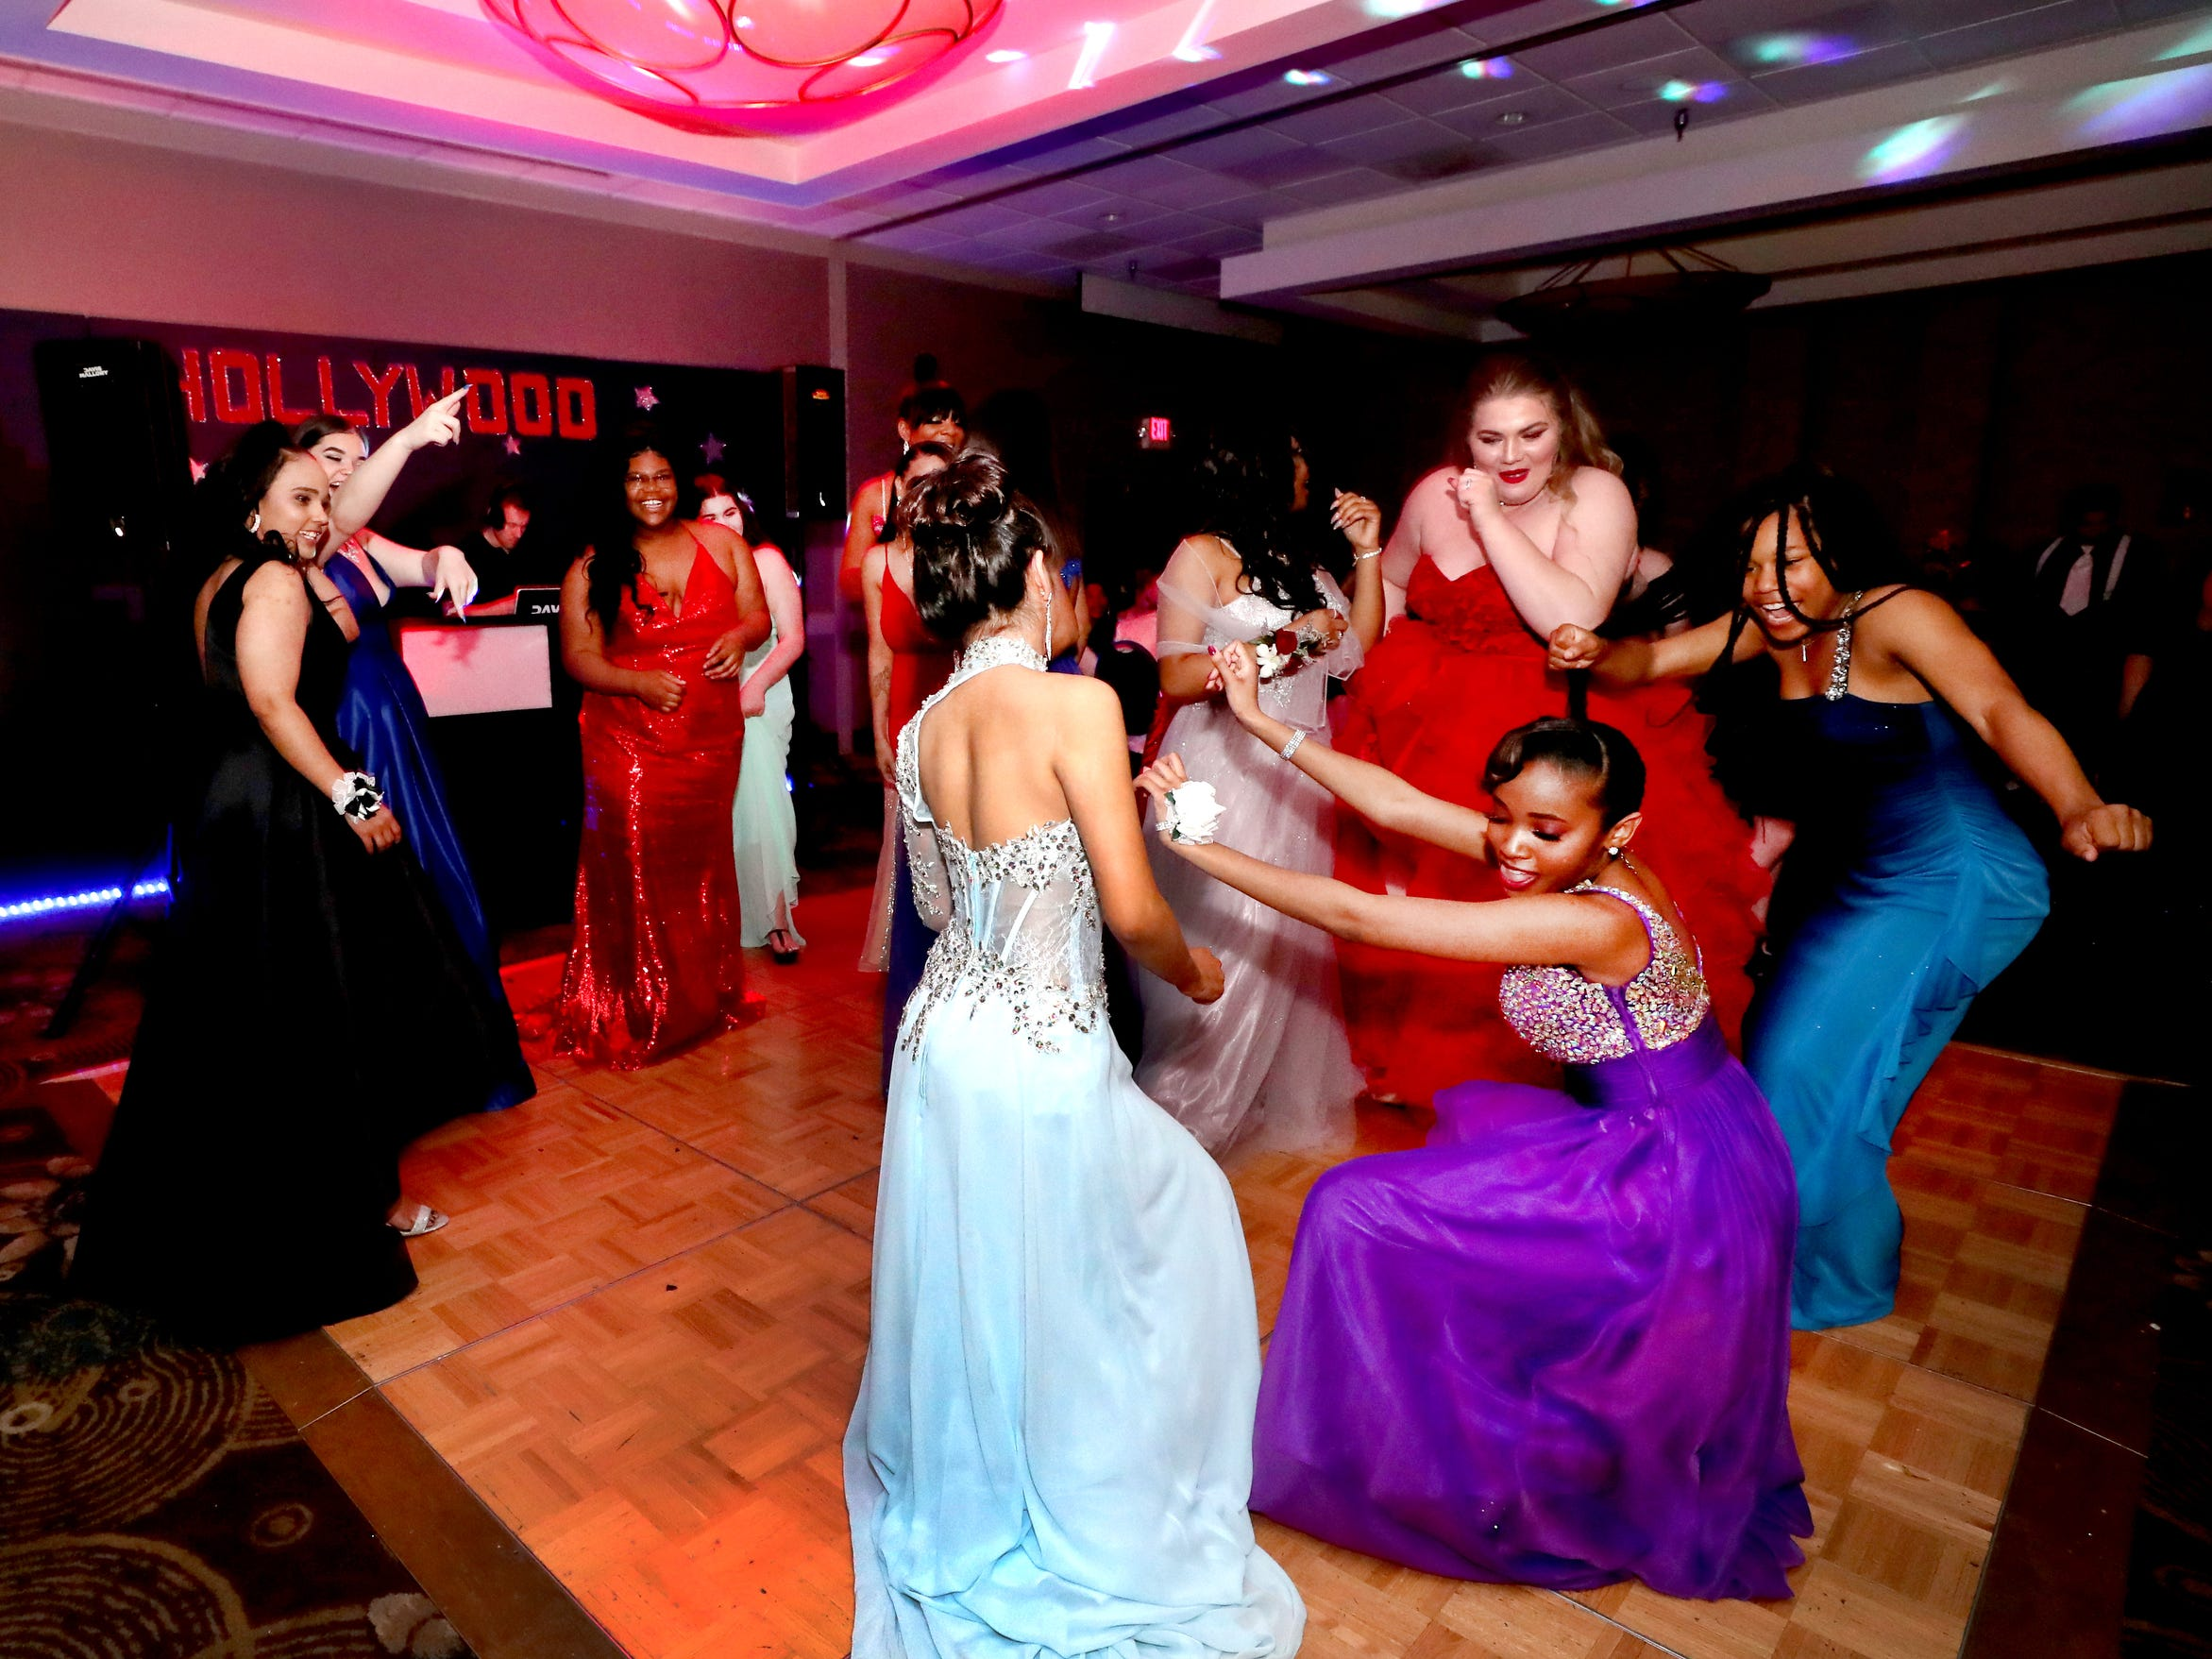 Students dance at Holloway's prom at the DoubleTree on Thursday April 18, 2019.